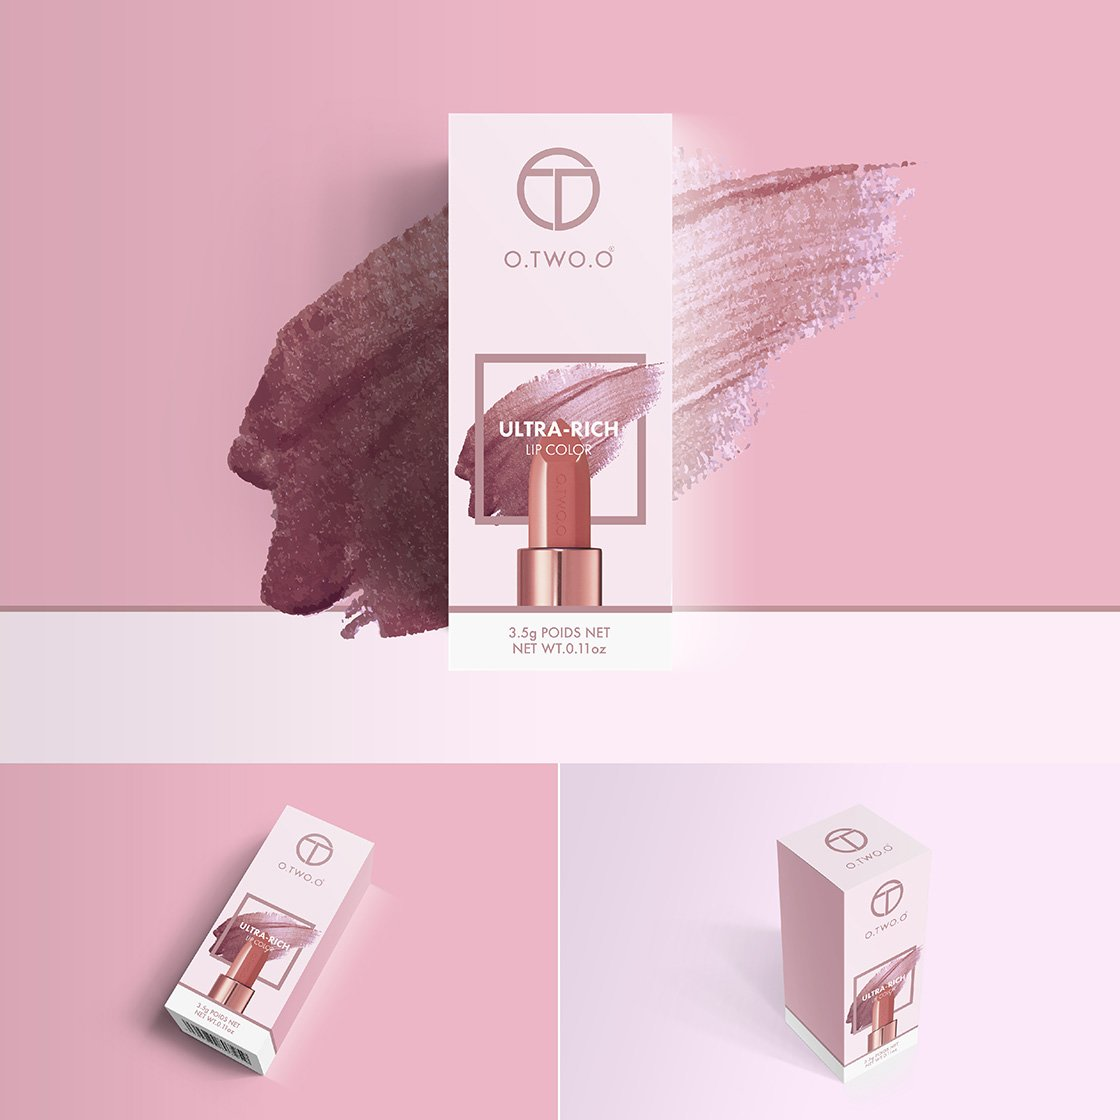 crowdspring lipstick packaging design by mattmac